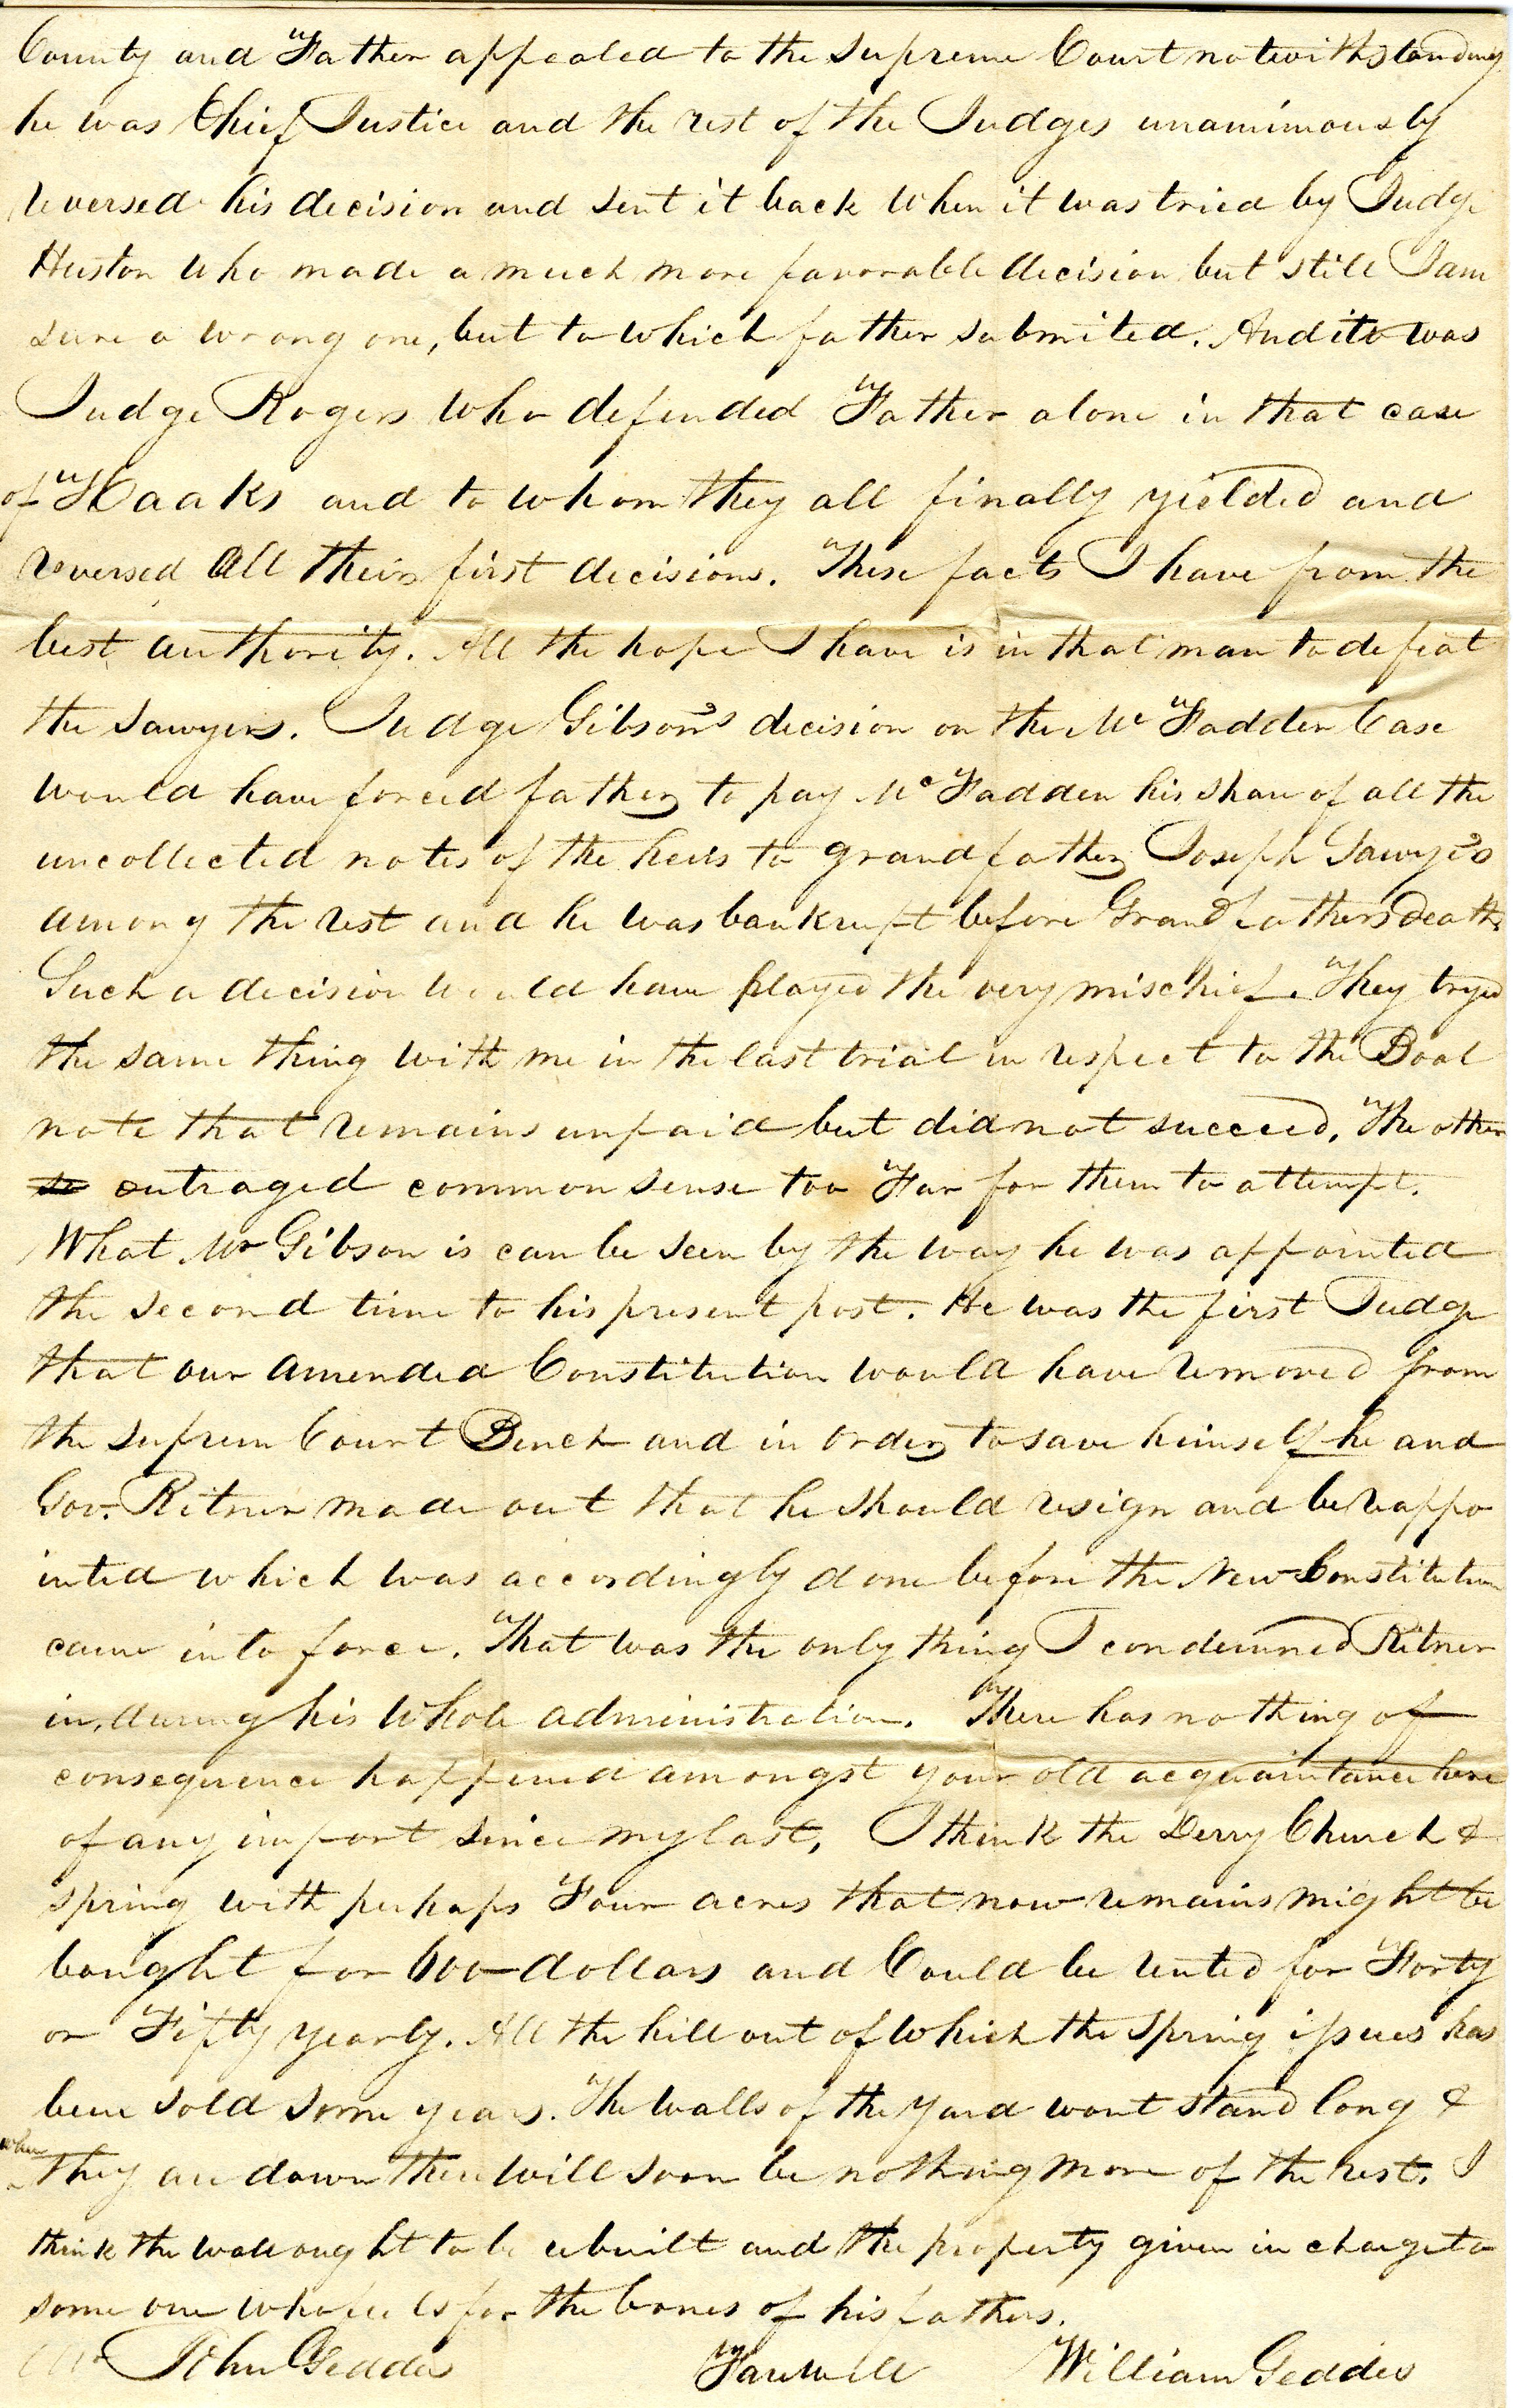 Letter From William Geddes to John Geddes, November 4, 1839 image